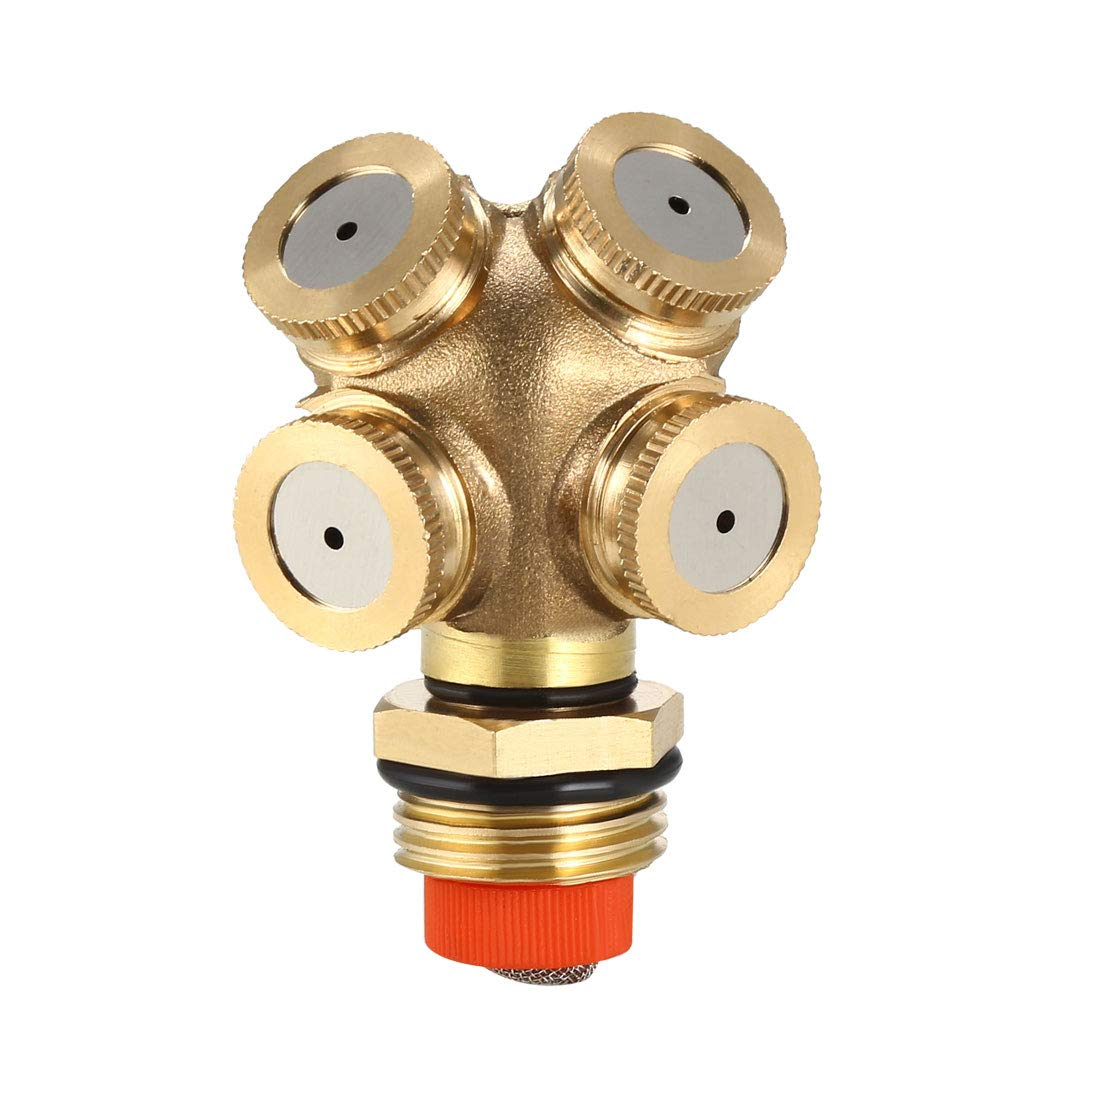 uxcell Misting Spray Nozzle, 1/2BSPF Brass 4 Holes Garden Sprinklers Irrigation Connector Fitting with Adapter and Filter Mesh